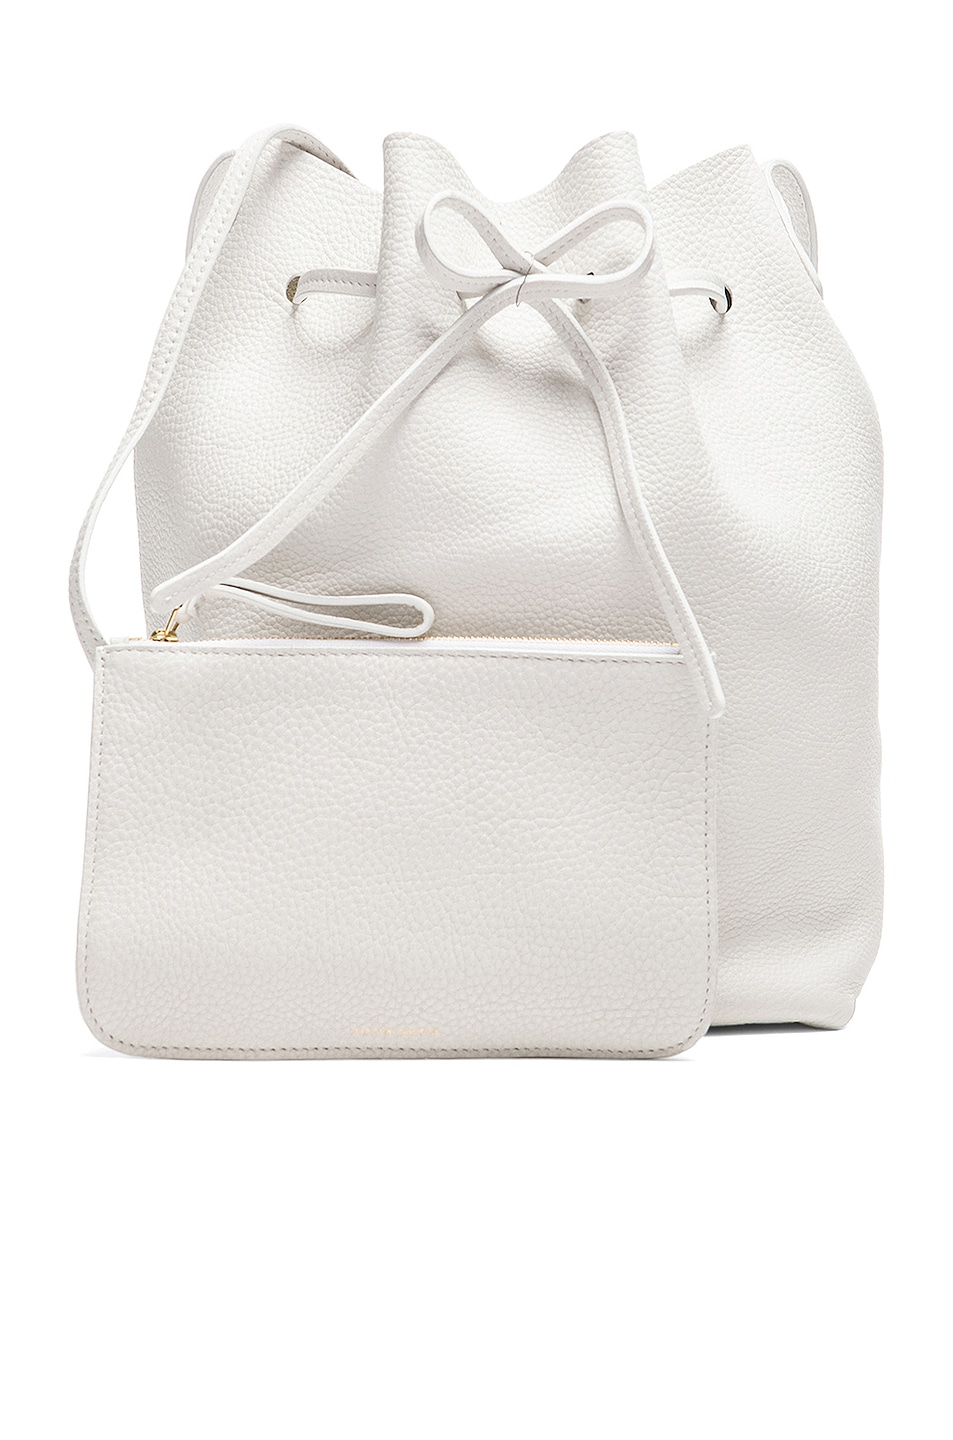 Image 7 of Mansur Gavriel Tumble Large Bucket Bag in White